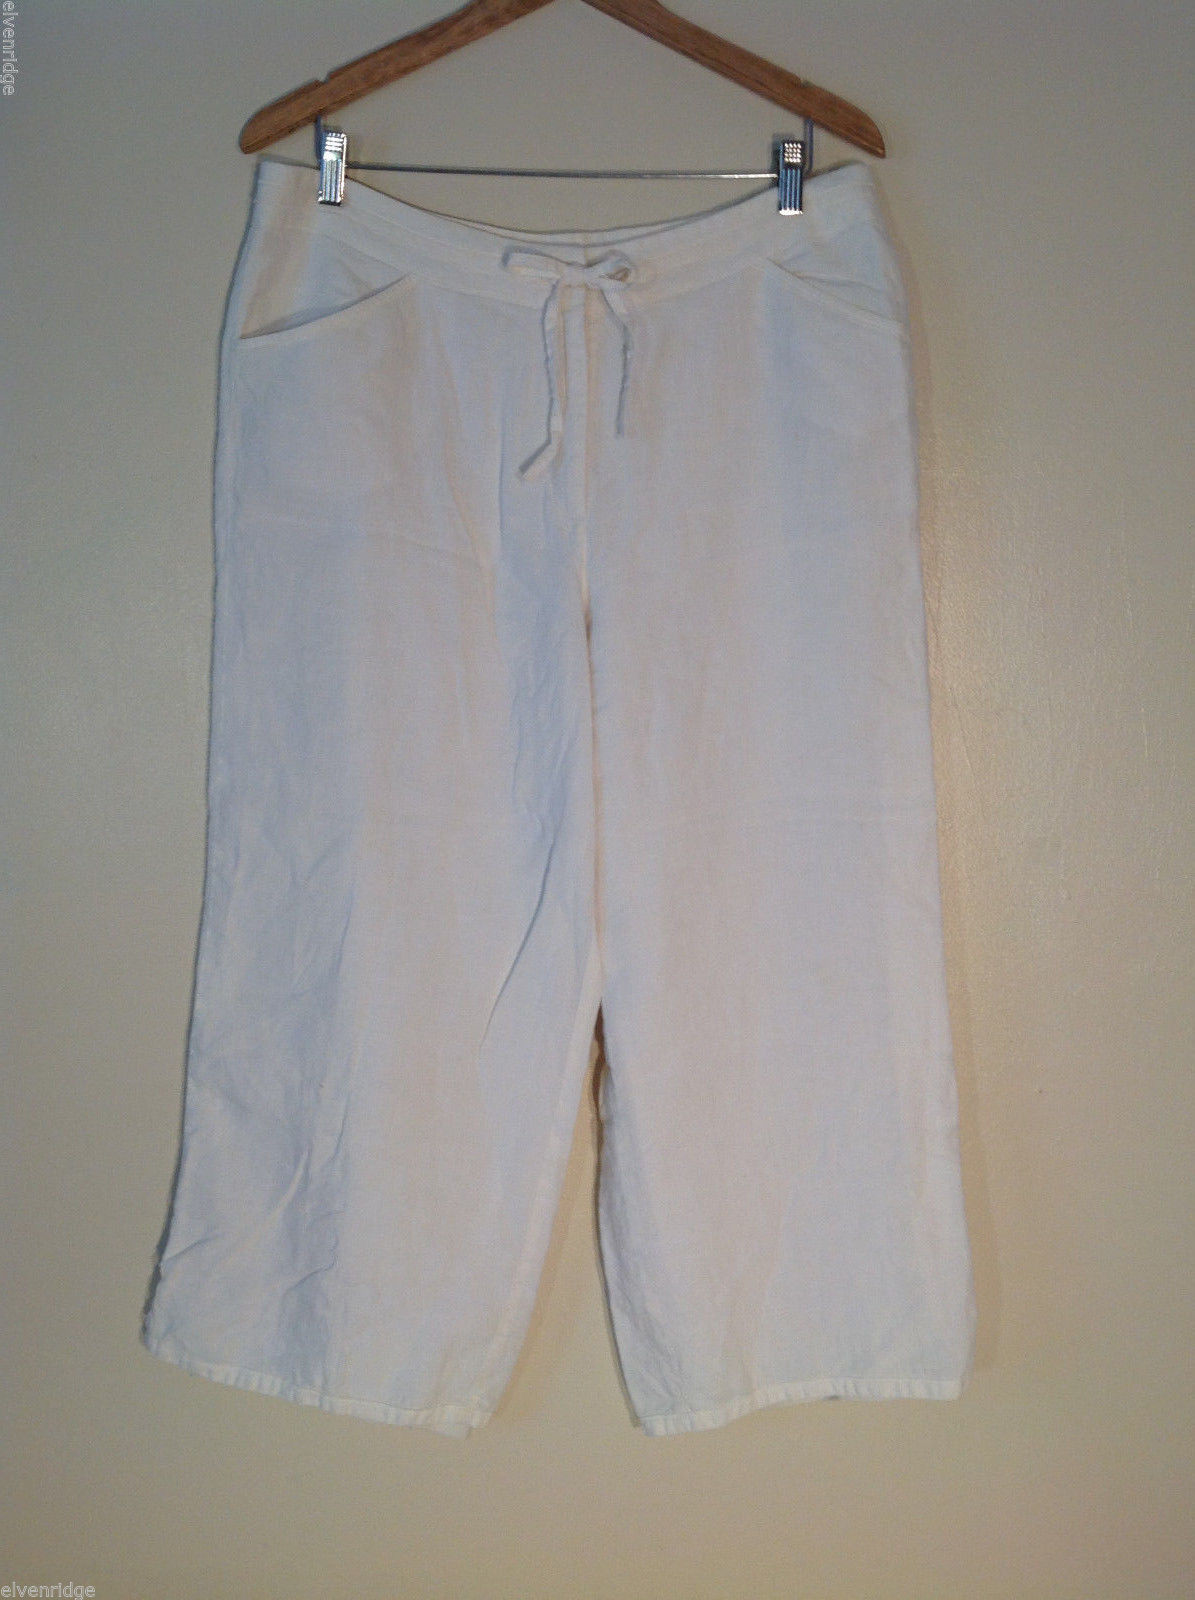 Womens J.Jill off-white linen fully lined pants Size 16